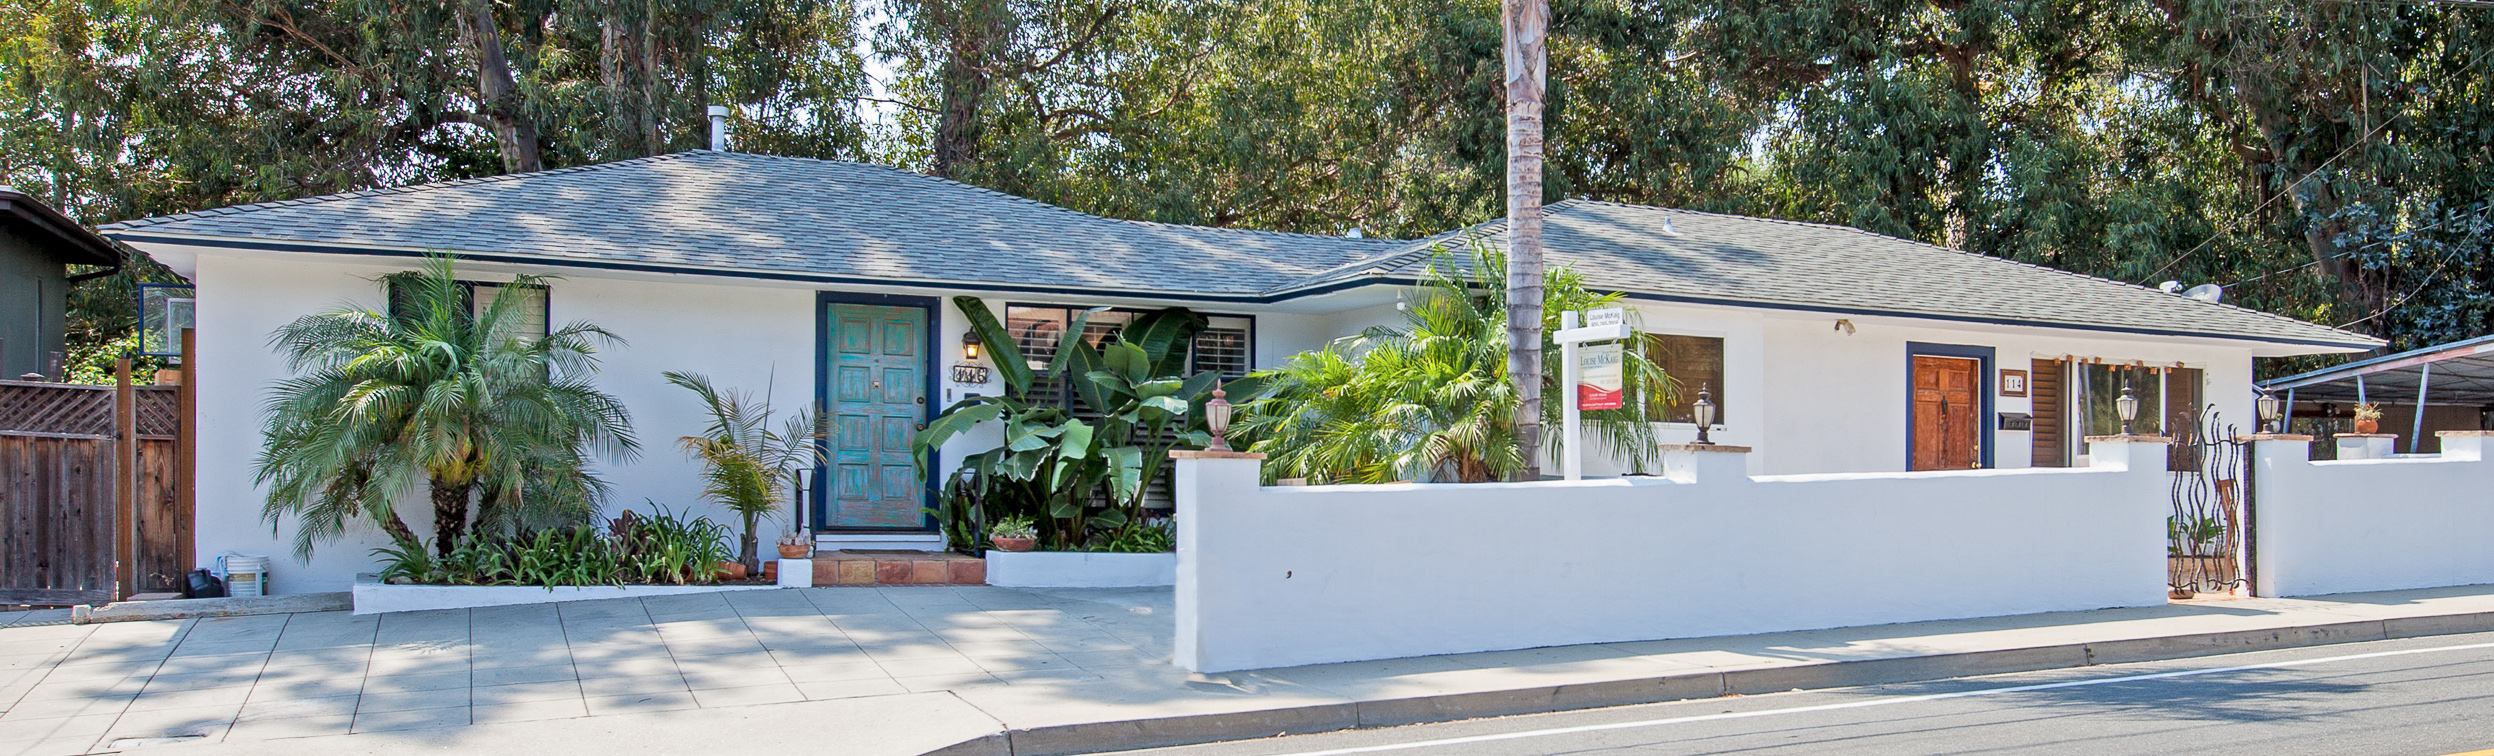 Downtown Santa Barbara Duplex at 114-116 W Alamar